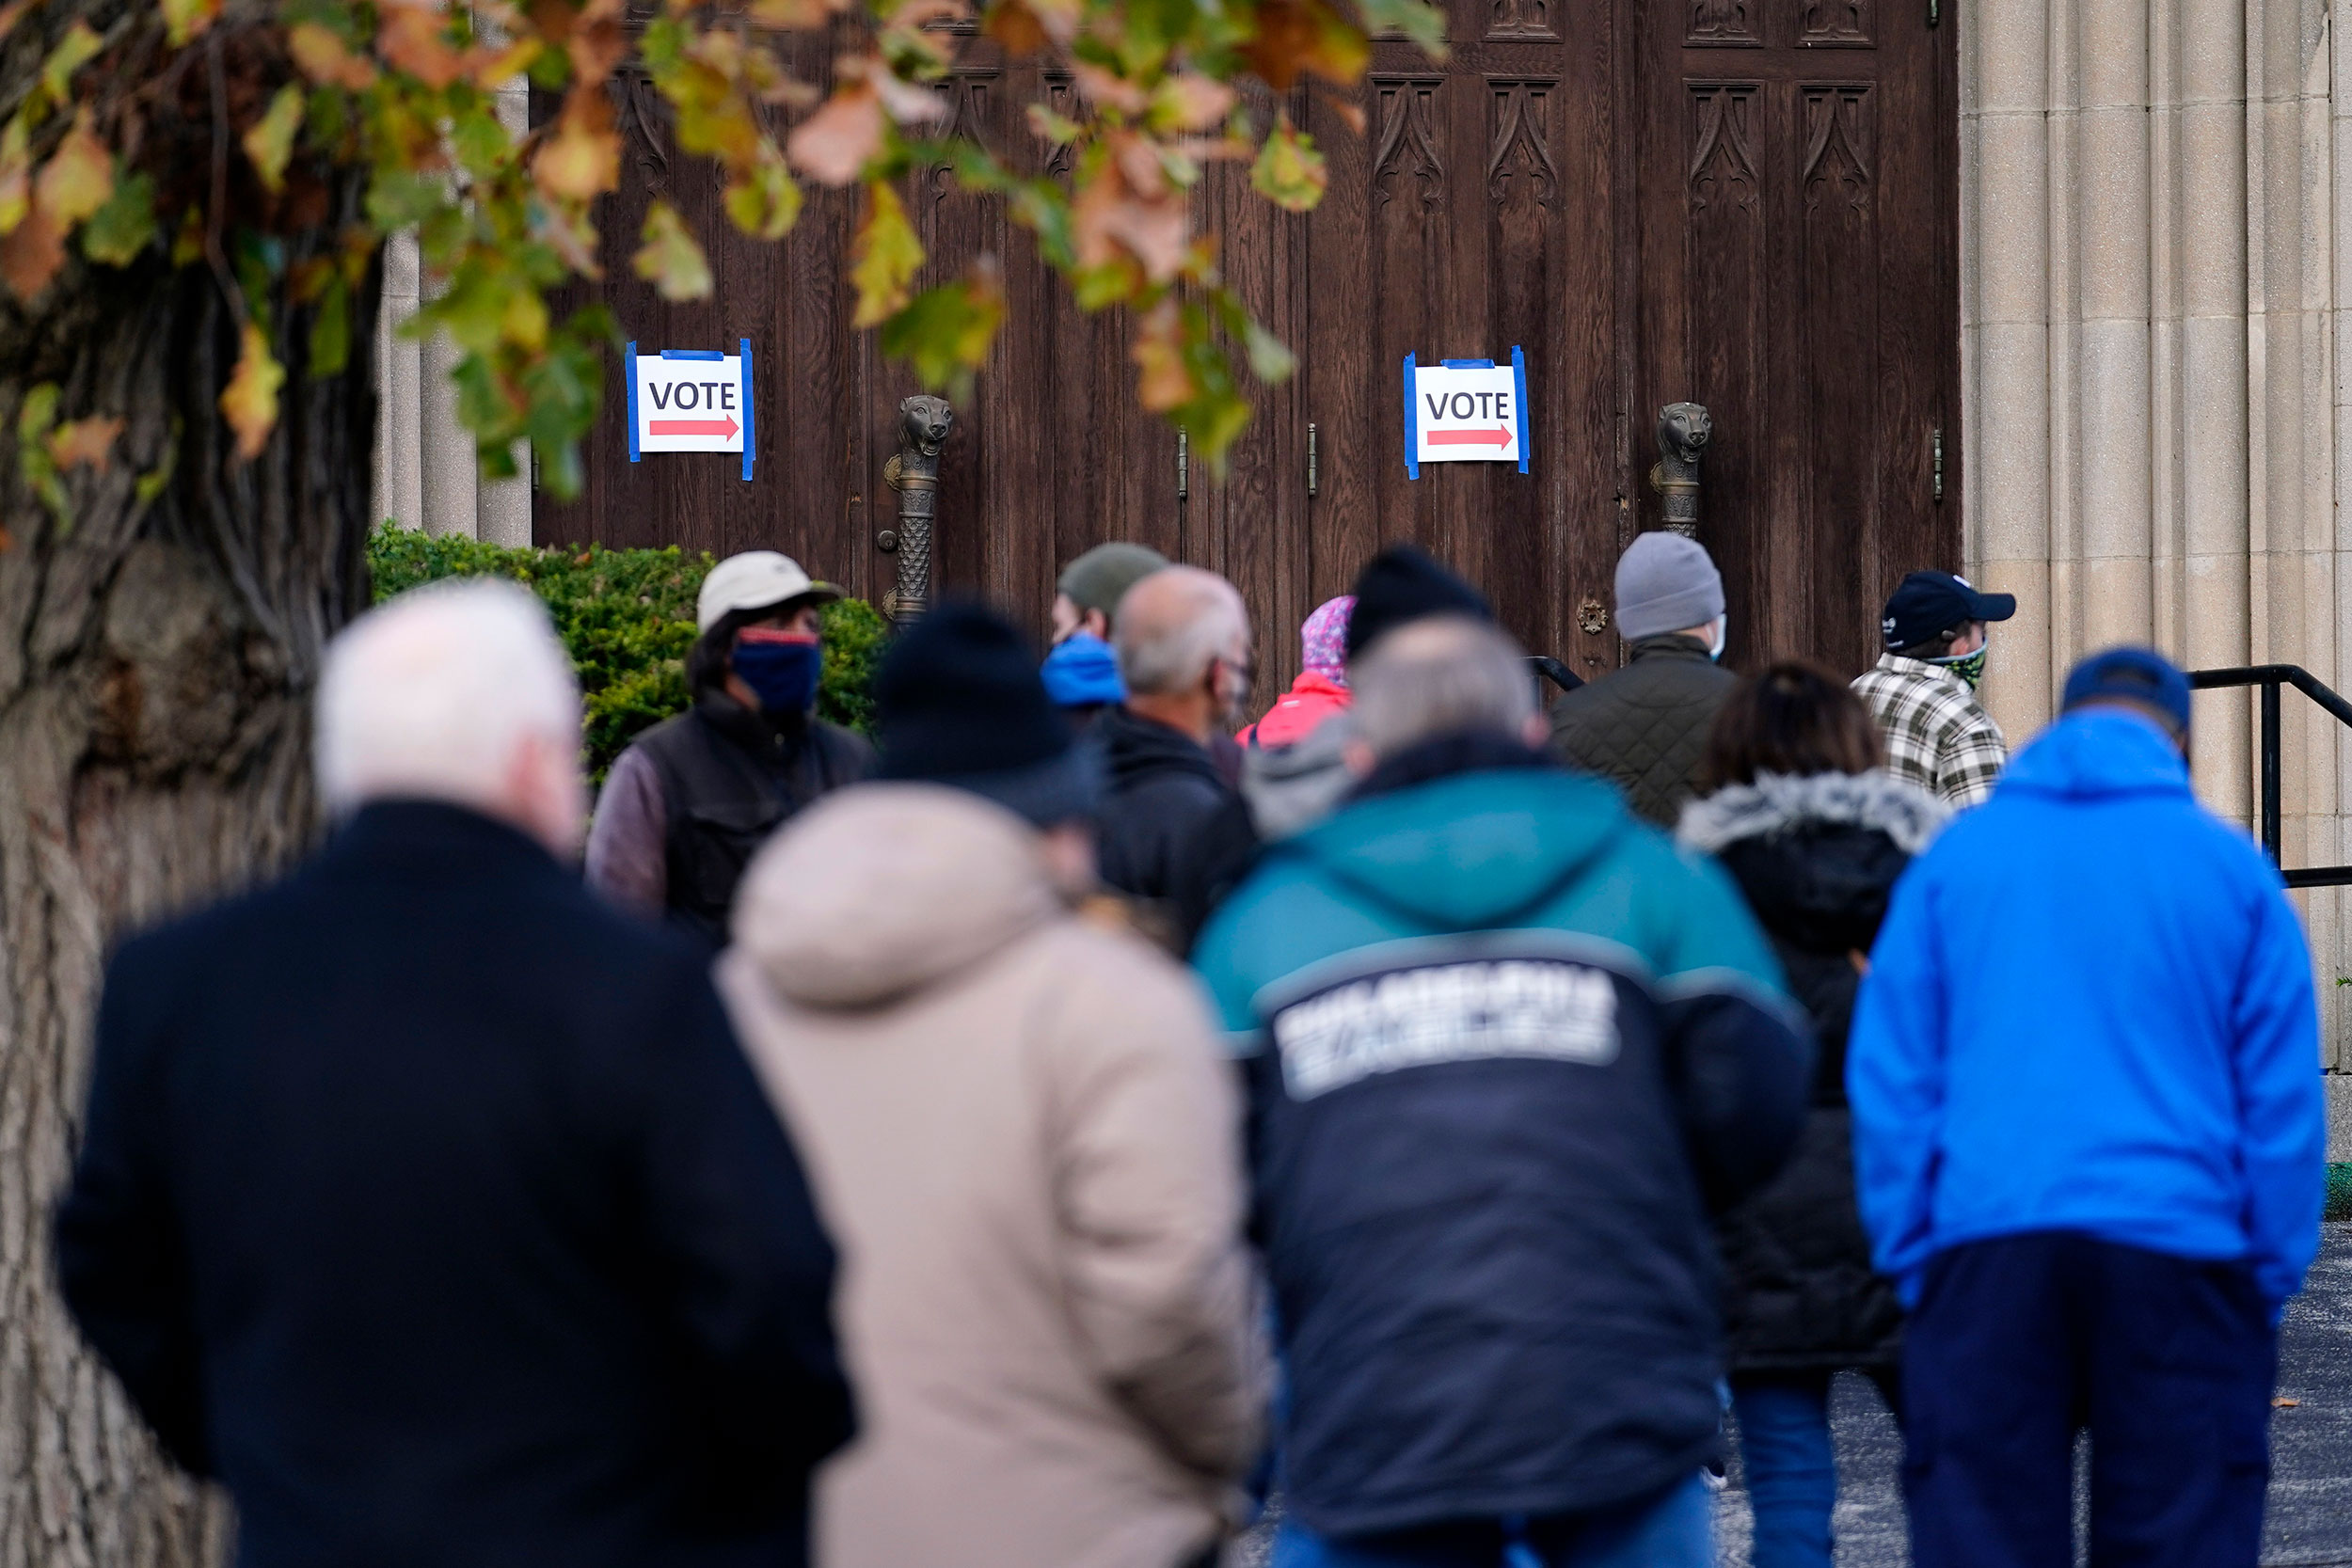 People wait outside a polling place to cast their ballots on November 3 in Media, Pennsylvania.